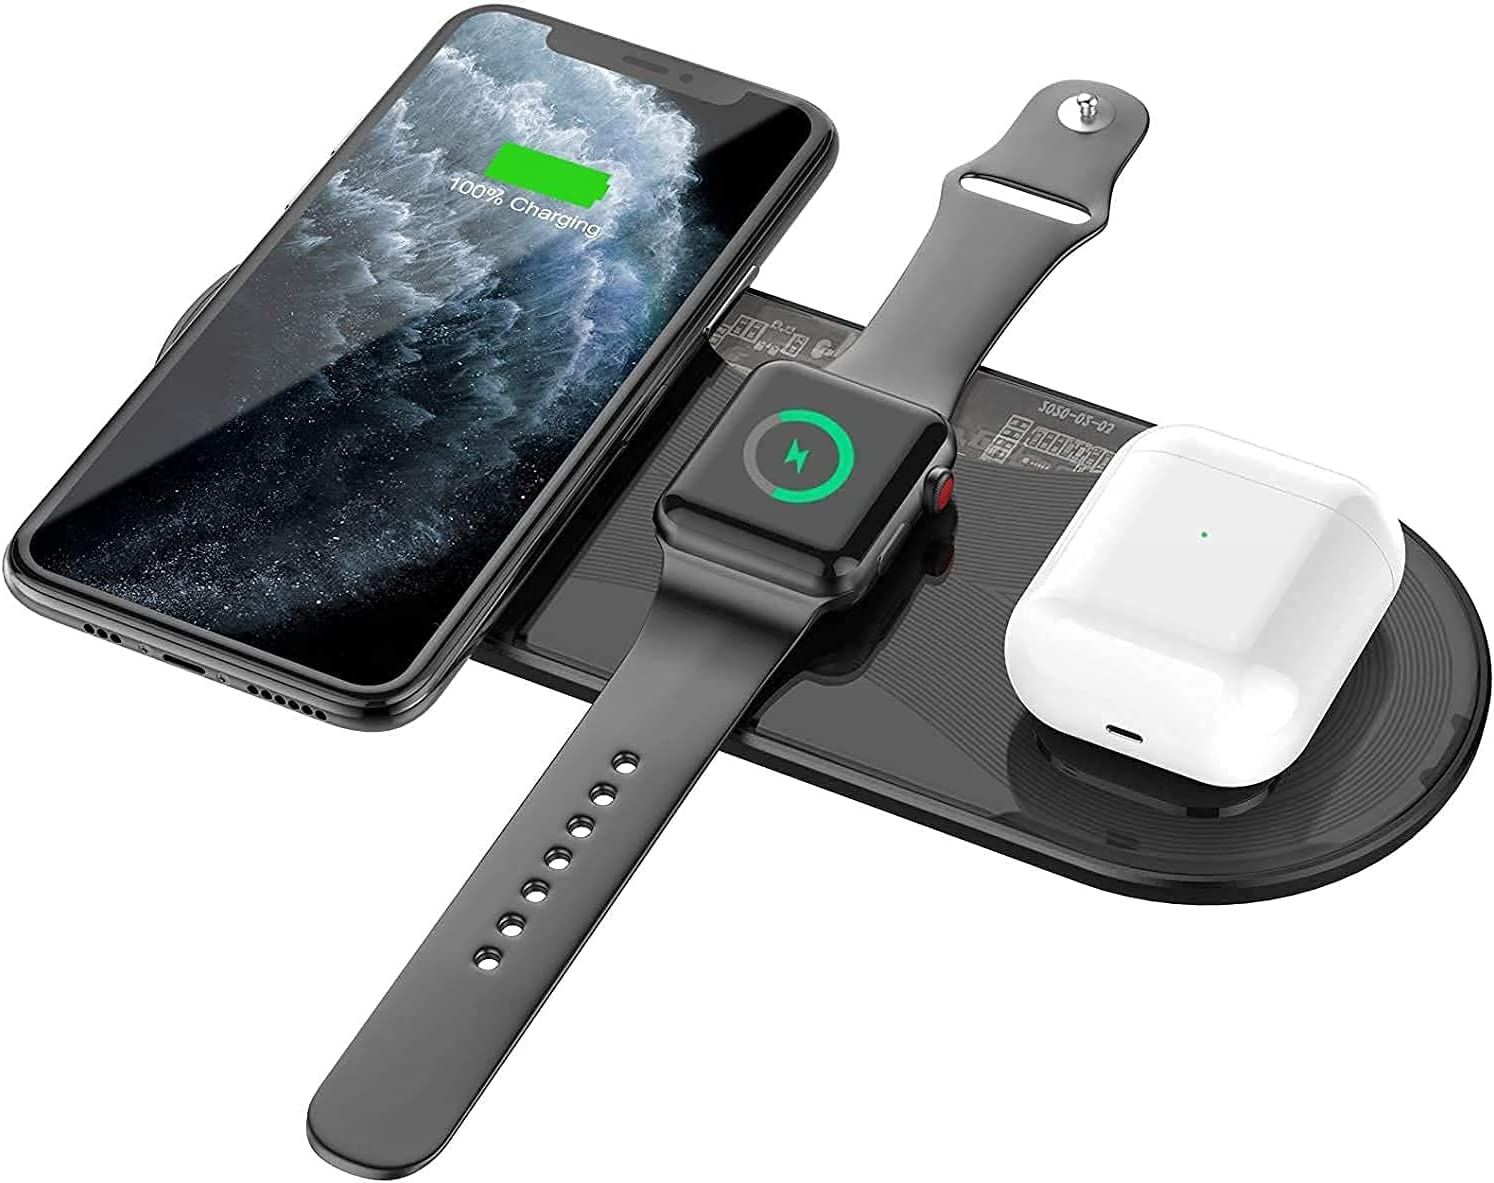 Wireless Charger, Blulory3 in 1 Wireless Charging Board, Qi Certified 15W Fast Charger,Compatible with iPhone 12 Mini/12/12 Pro/12 Pro Max/11/11pro/Se/X/XS/XR/Xs Max/8/8 and Apple Watch AirPods 2/Pro